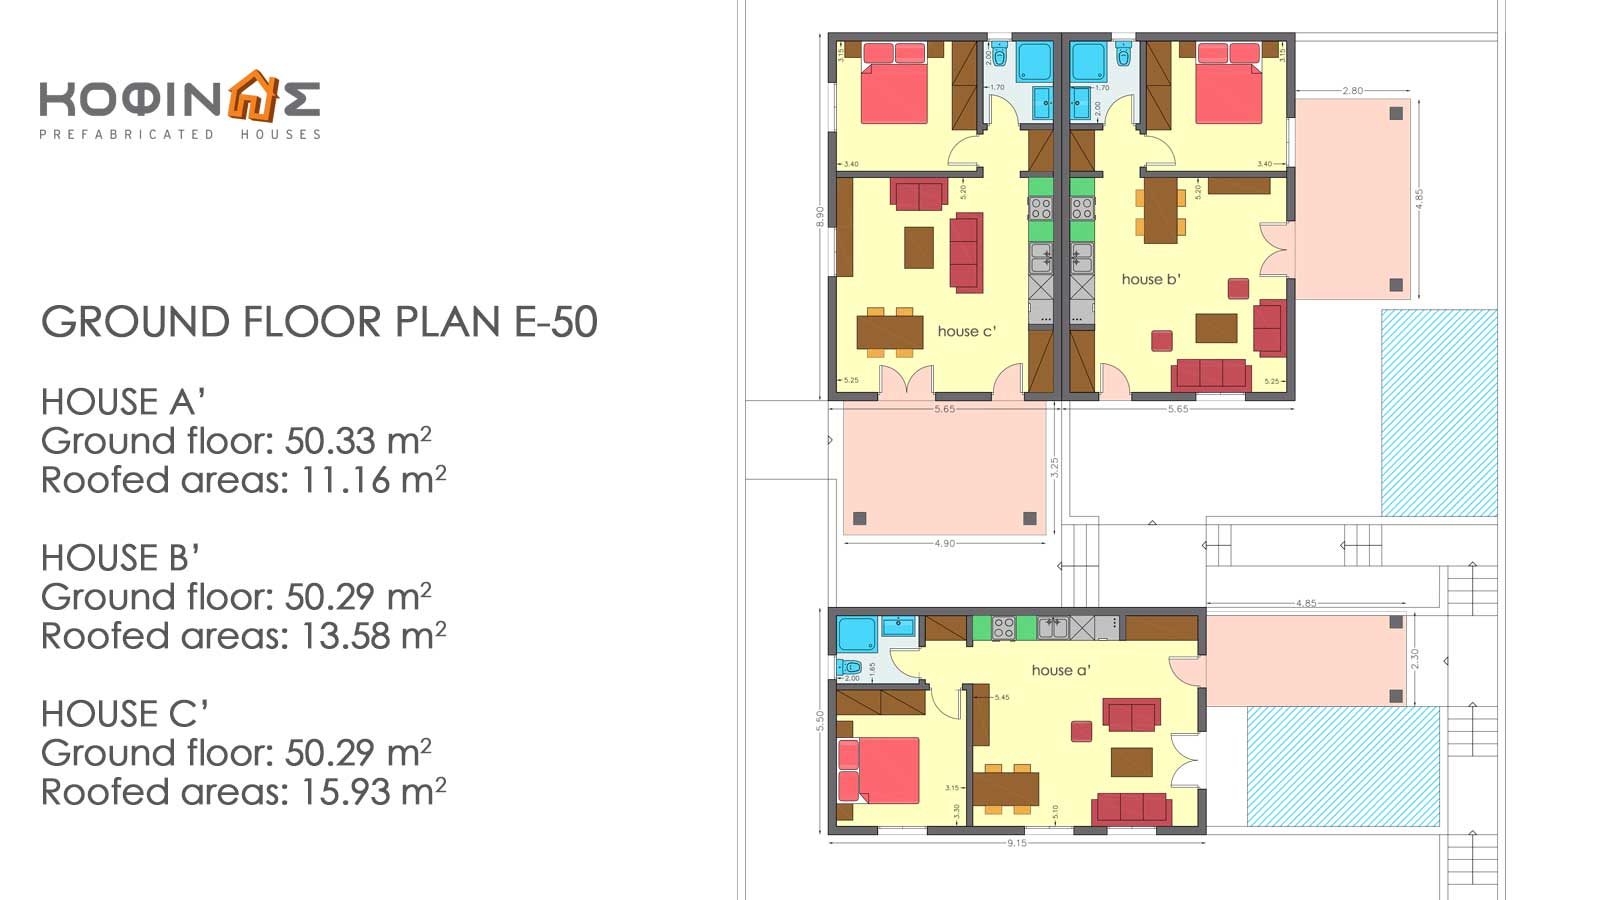 Complex of 1-story houses E-50, total surface of 3 x 50,30 = 150,90 m²